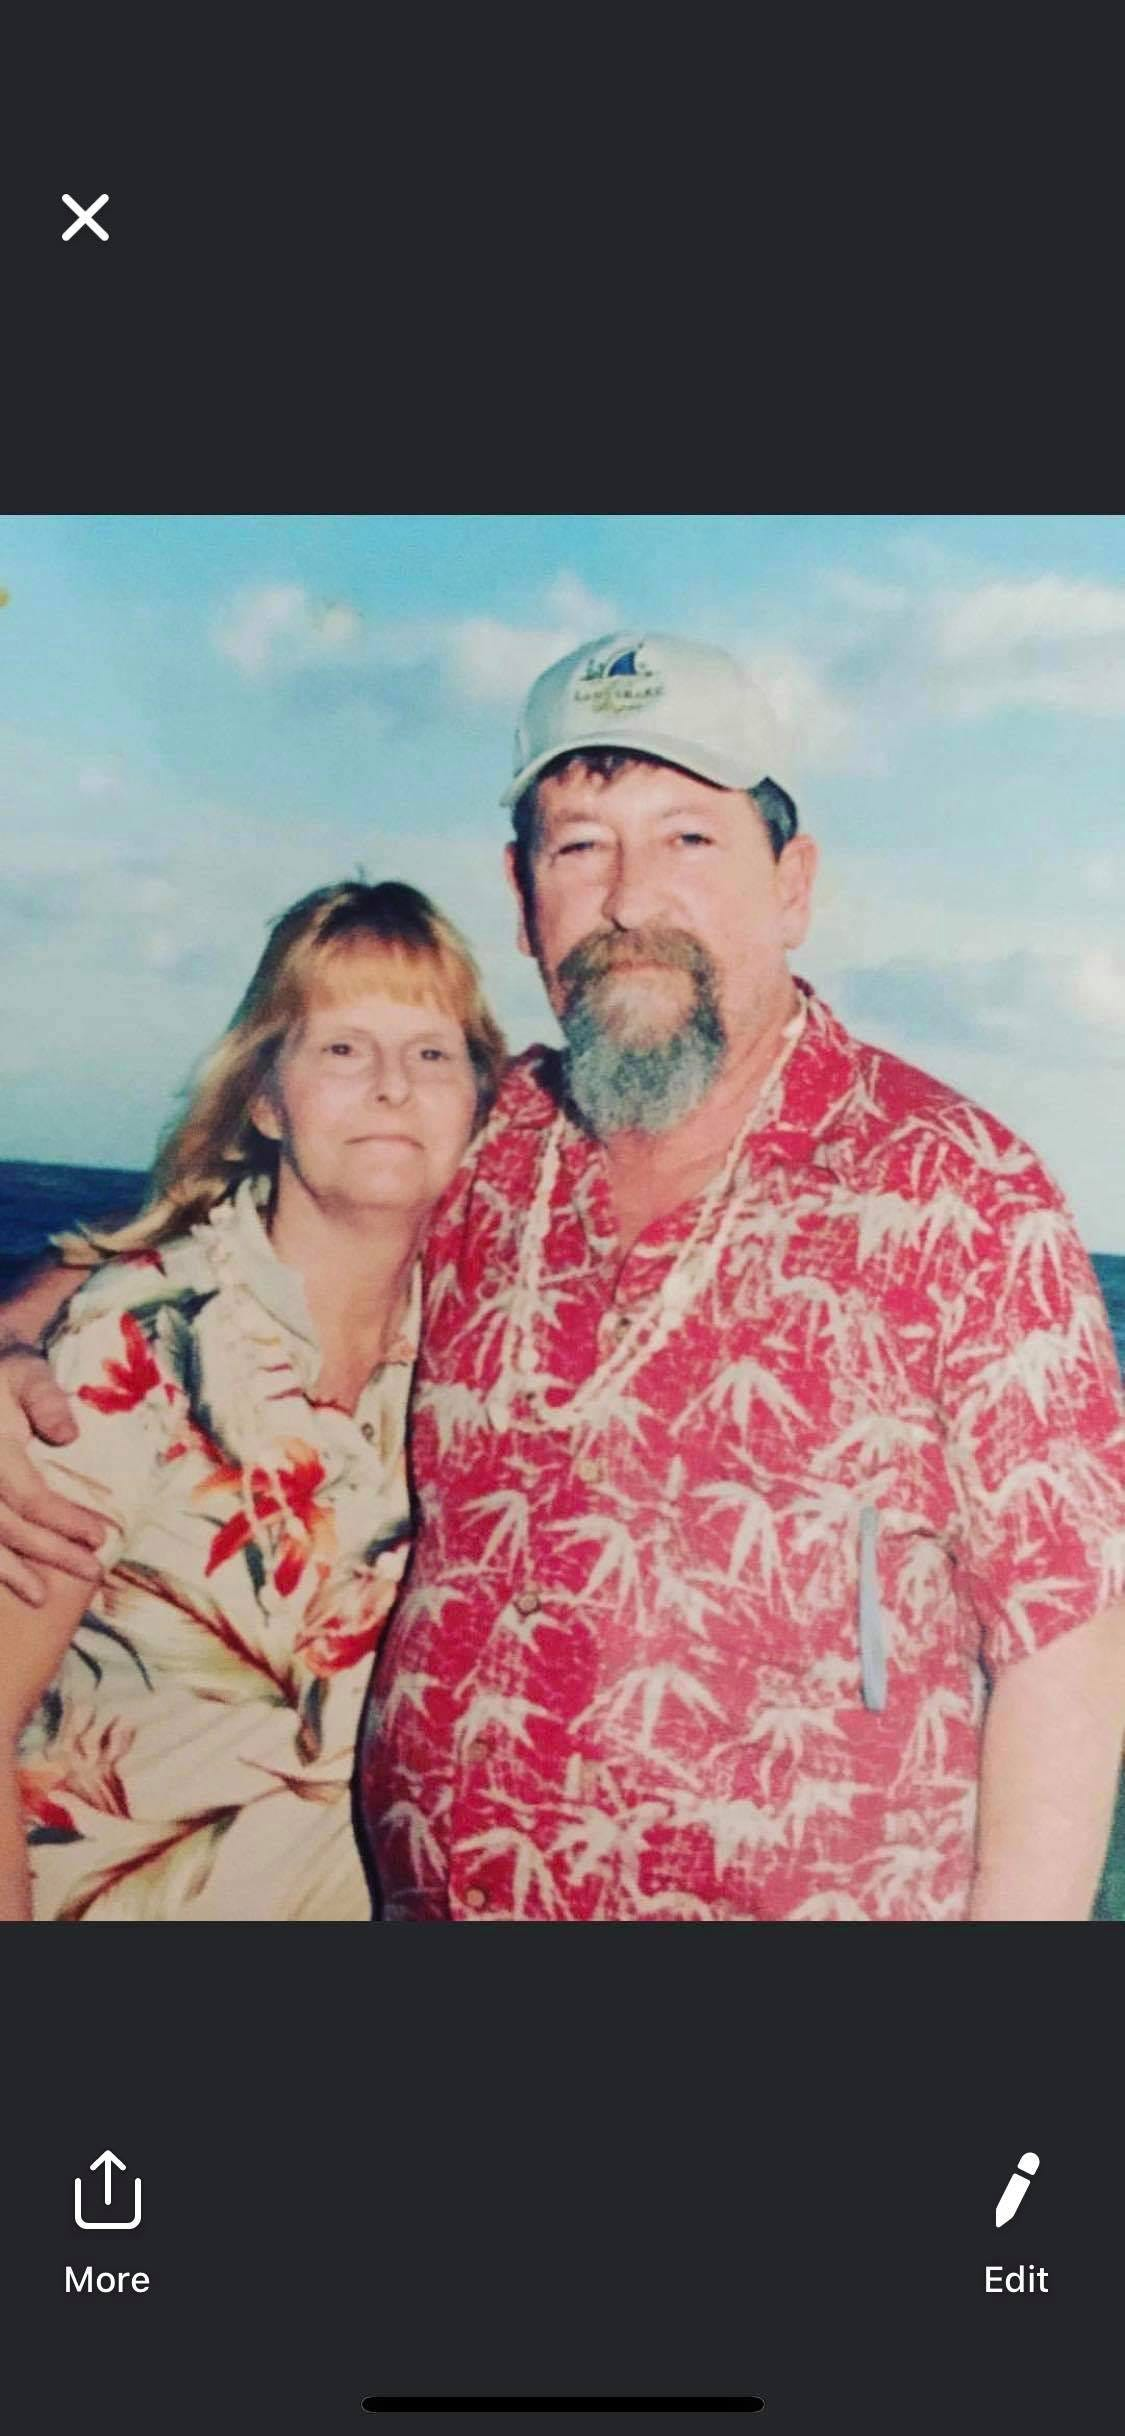 Undying love: Years after losing cancer battle, he still gets wife Valentine s Day flowers